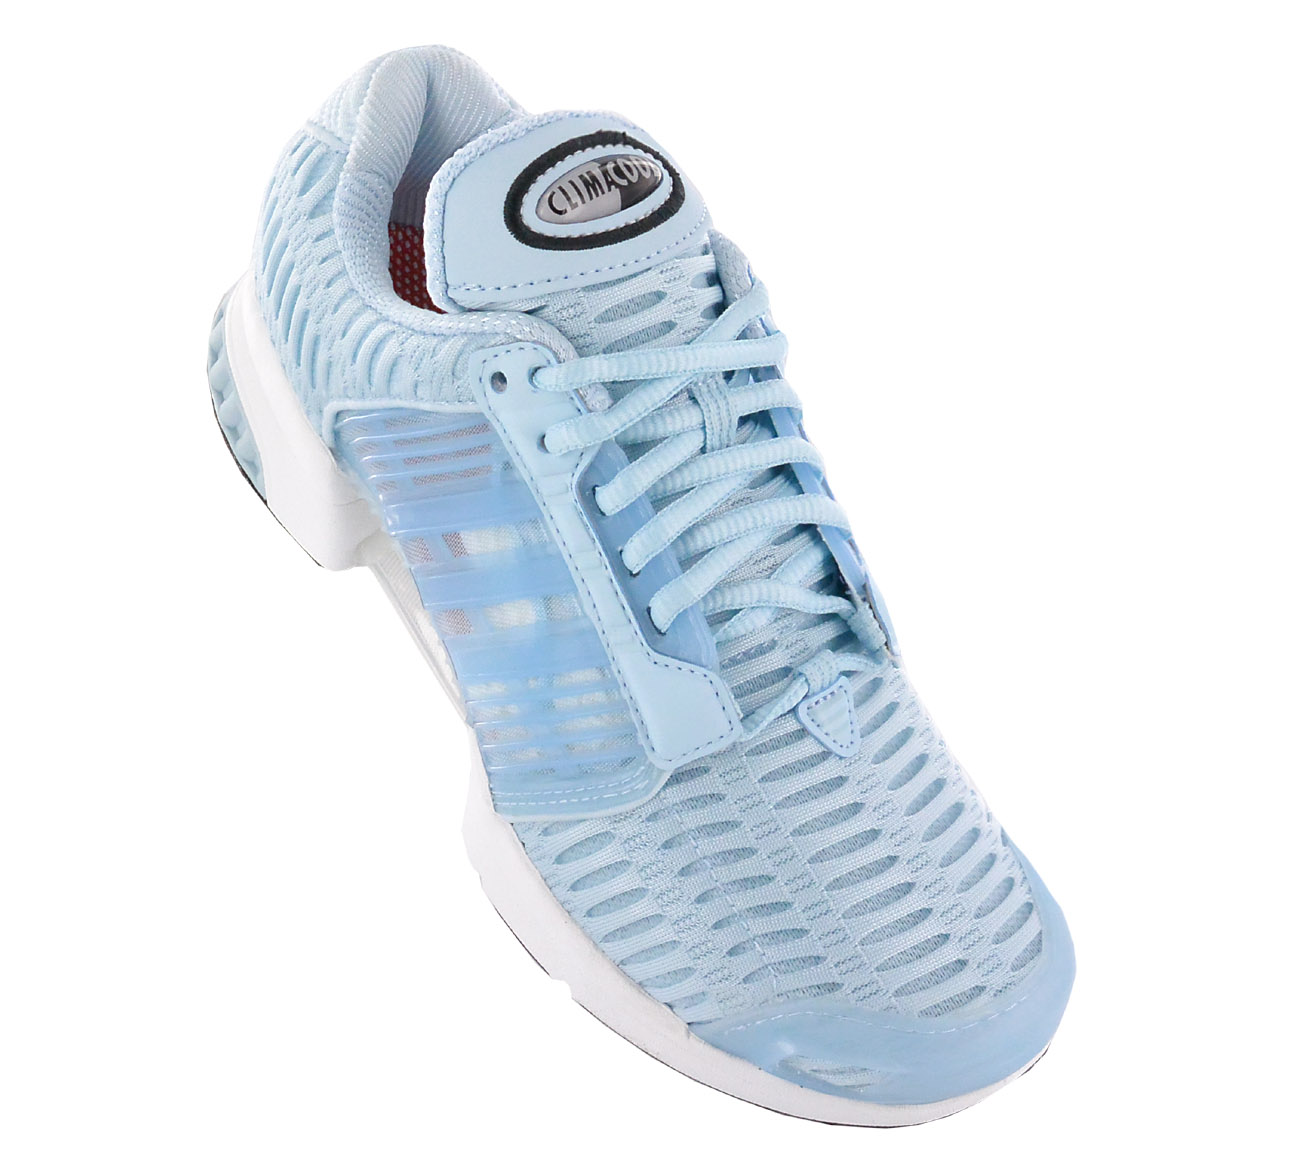 adidas originals climacool 1 trainers in blue ba8580